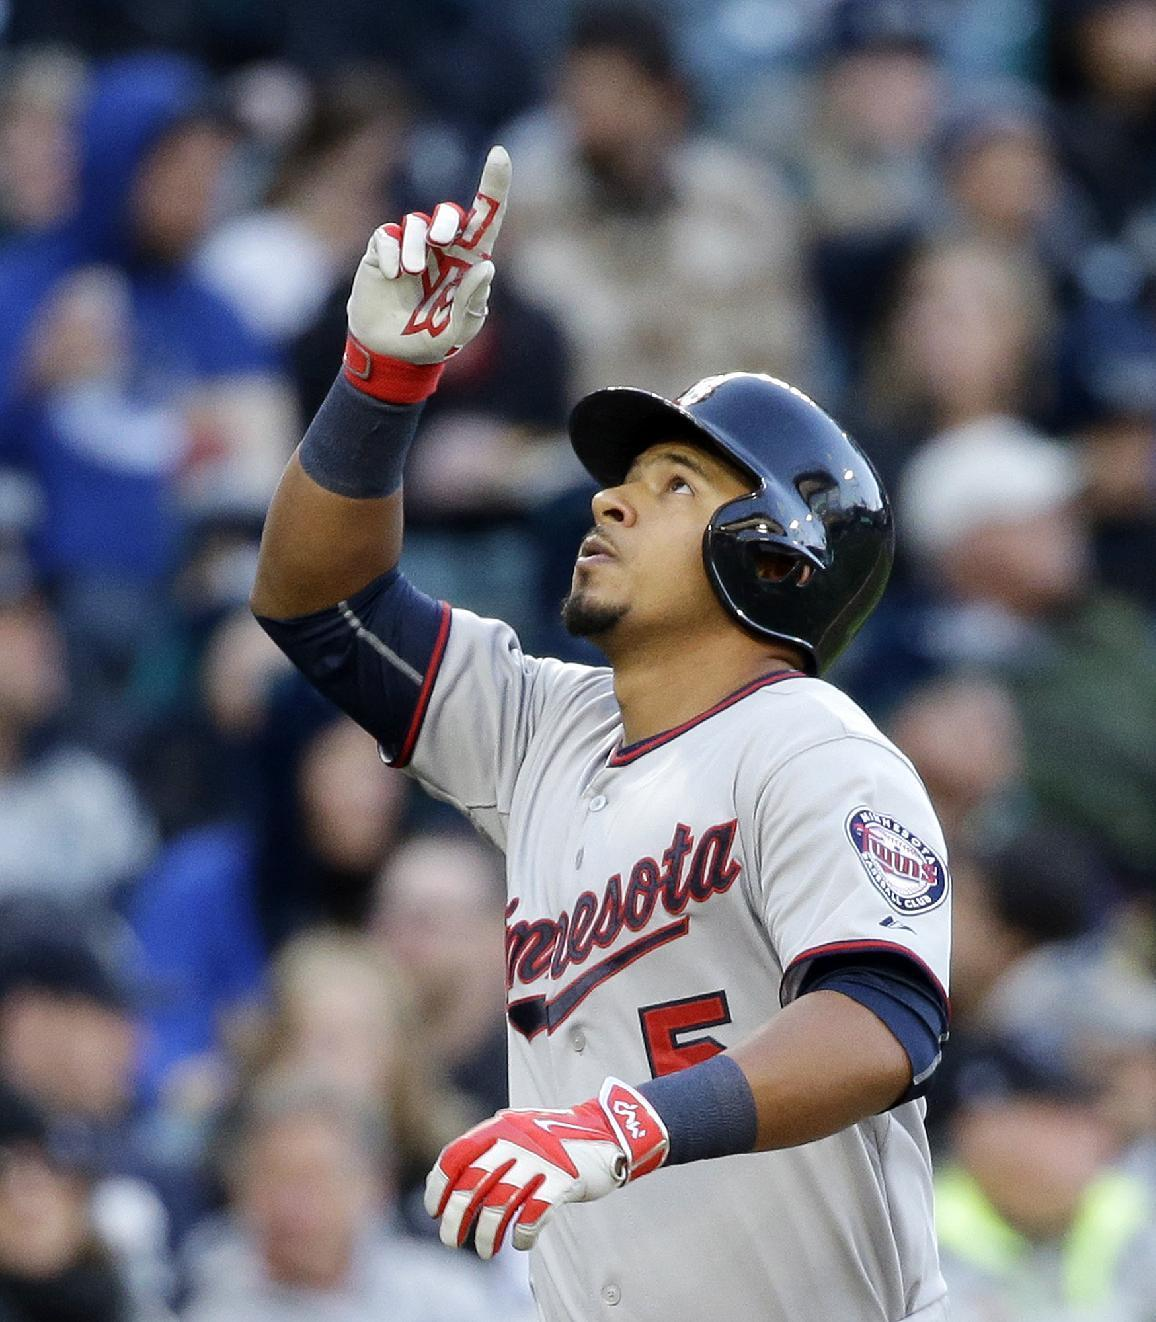 Escobar's HR leads Twins' balanced 8-5 win over Seattle